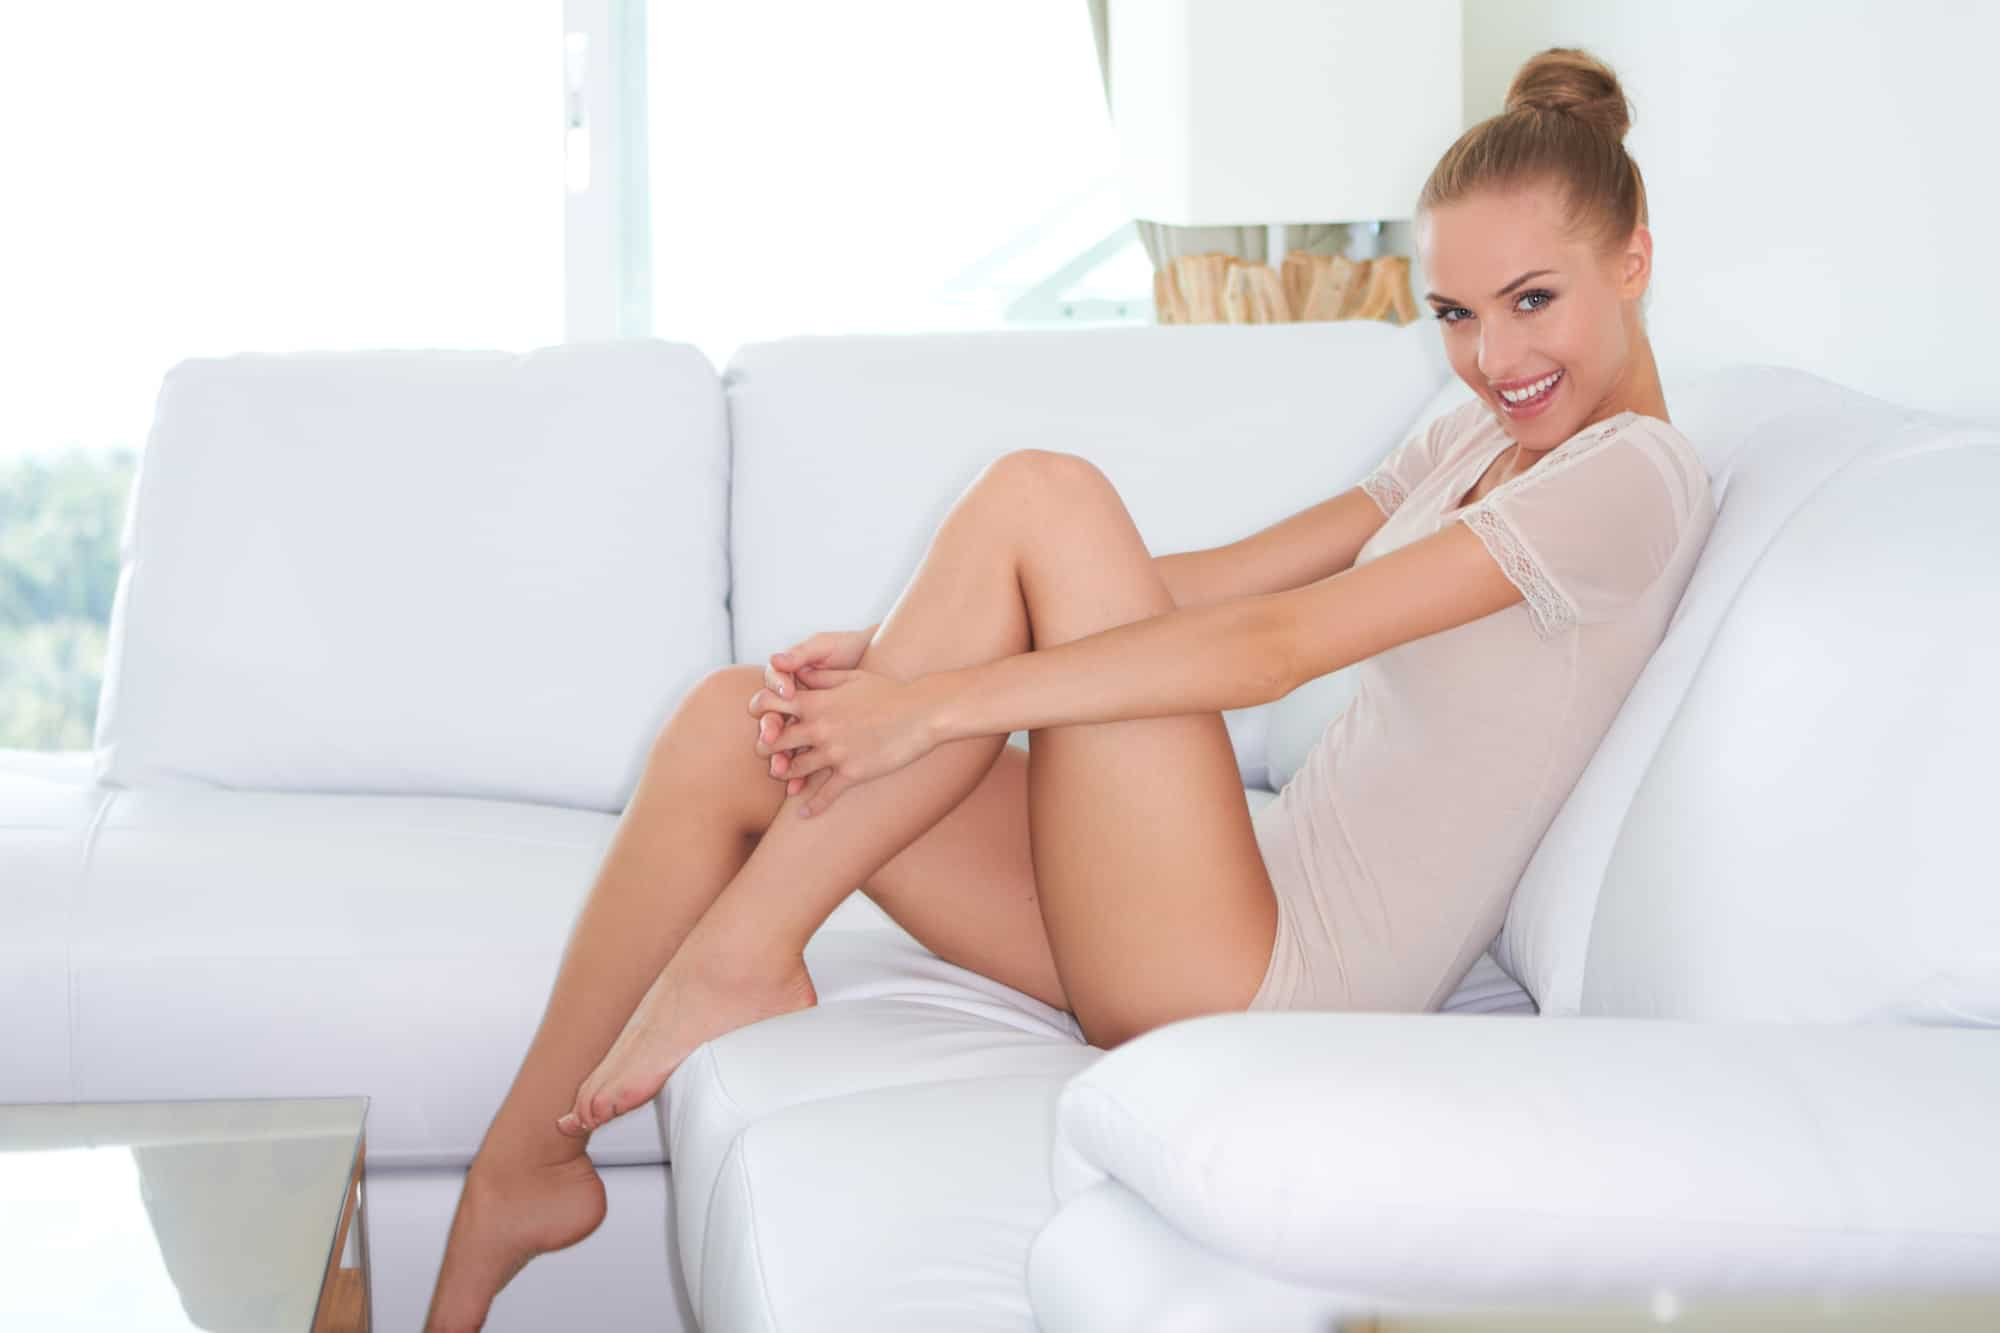 Smiling woman on white couch